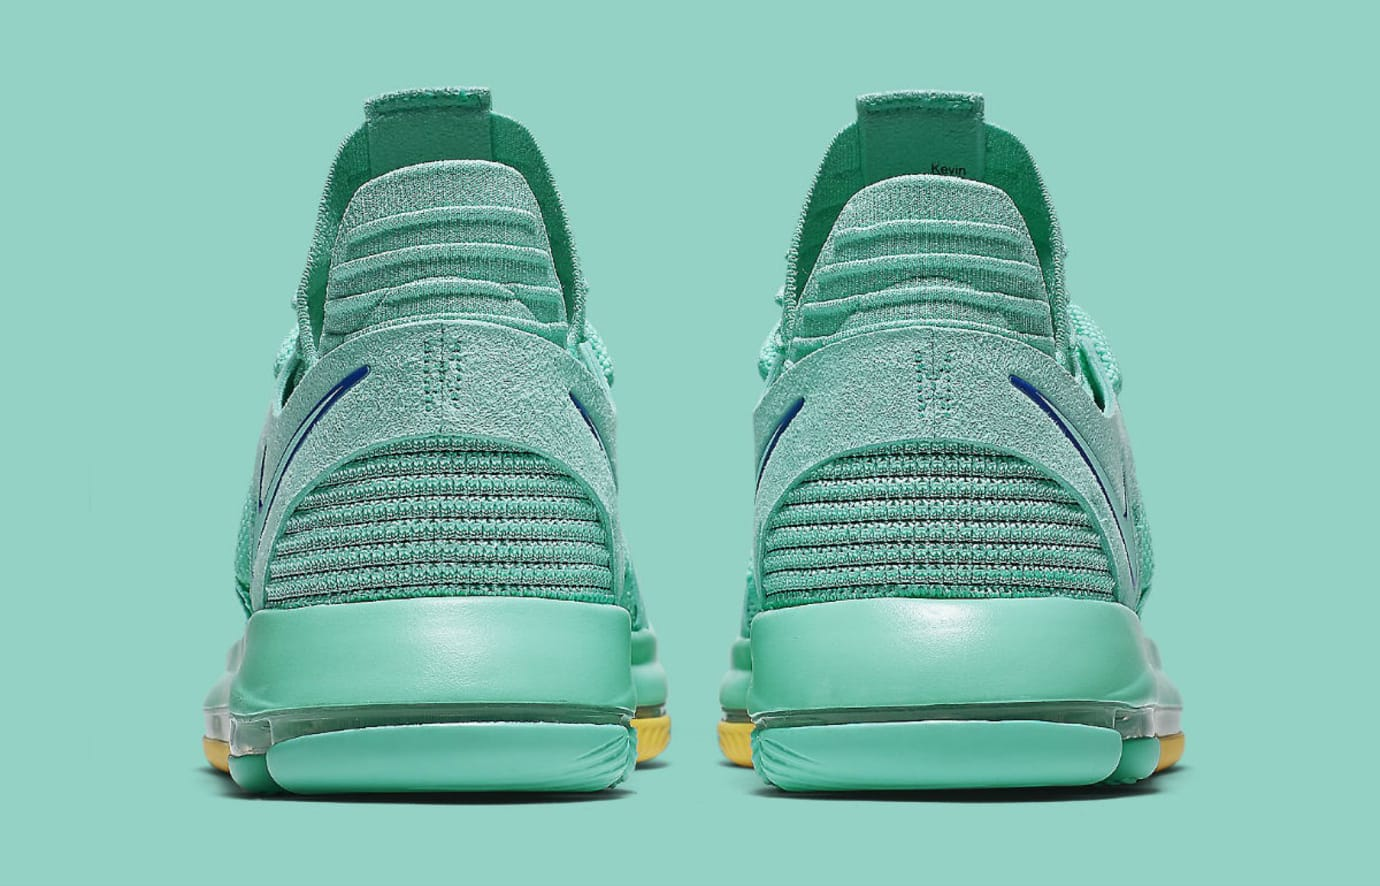 Nike KD 10 X City Edition Hyper Turquoise Racer Blue Release Date 897816-300 Heel